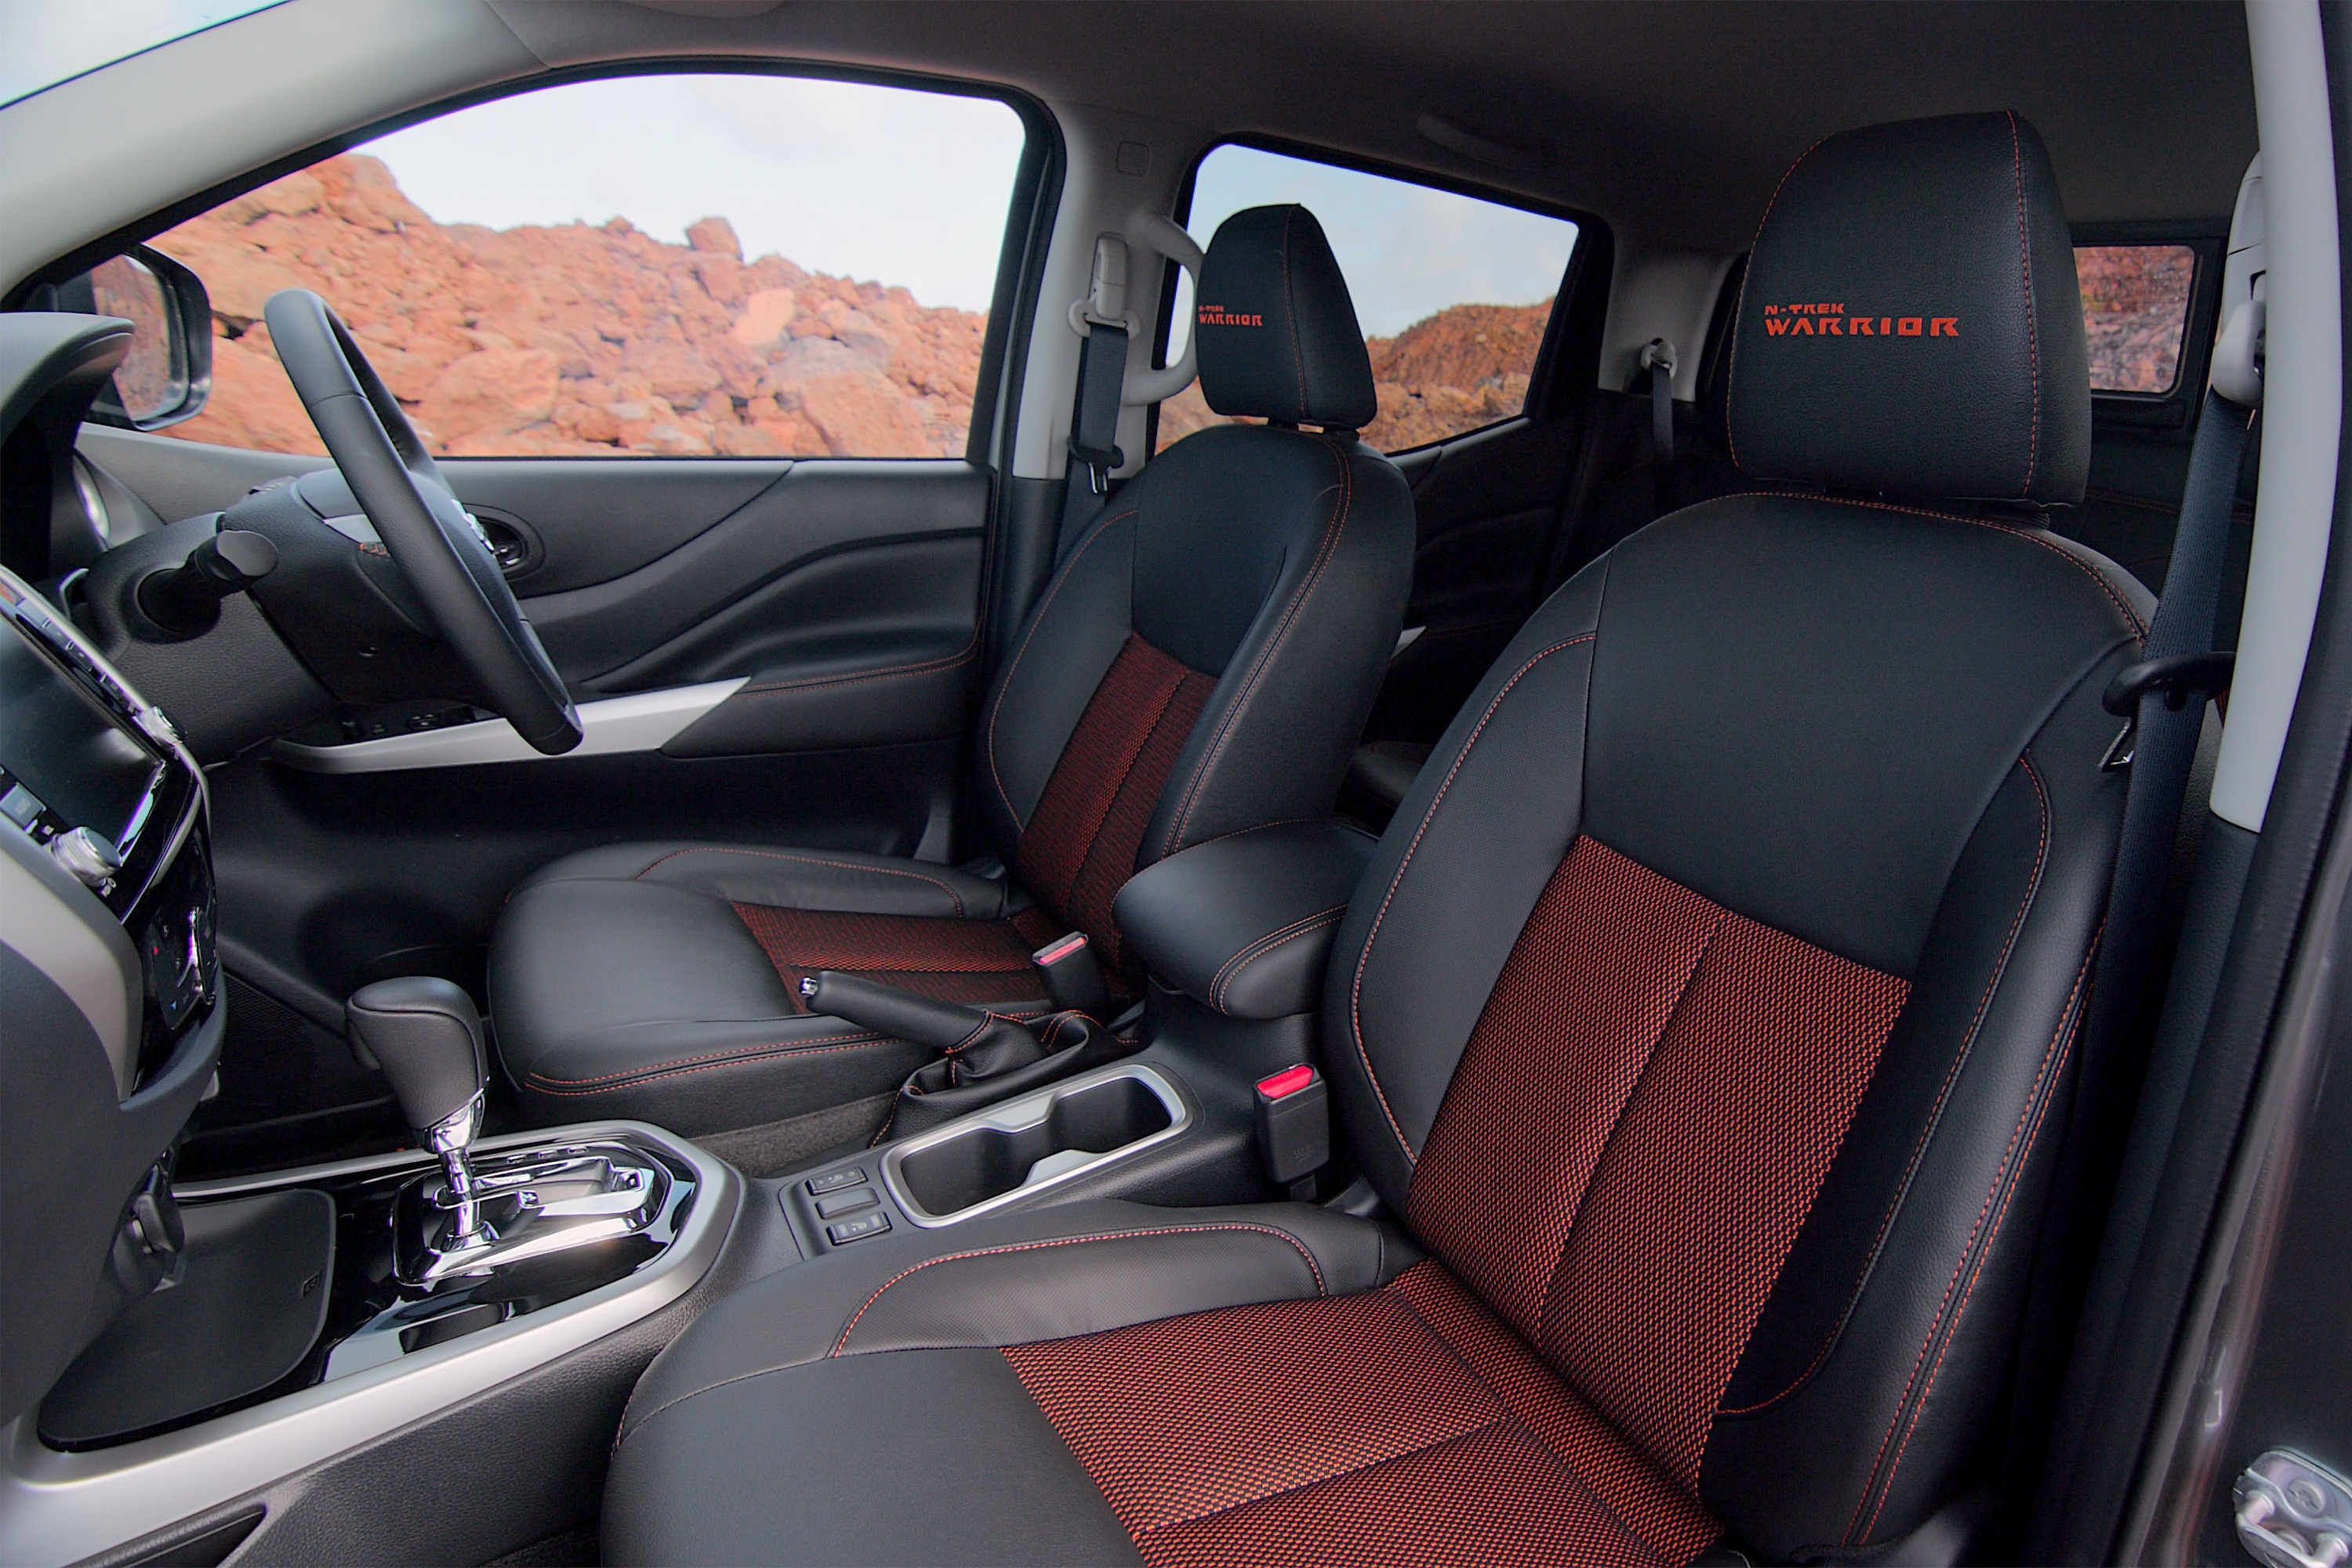 Nissan Navara N-TREK Warrior 4 interior seats